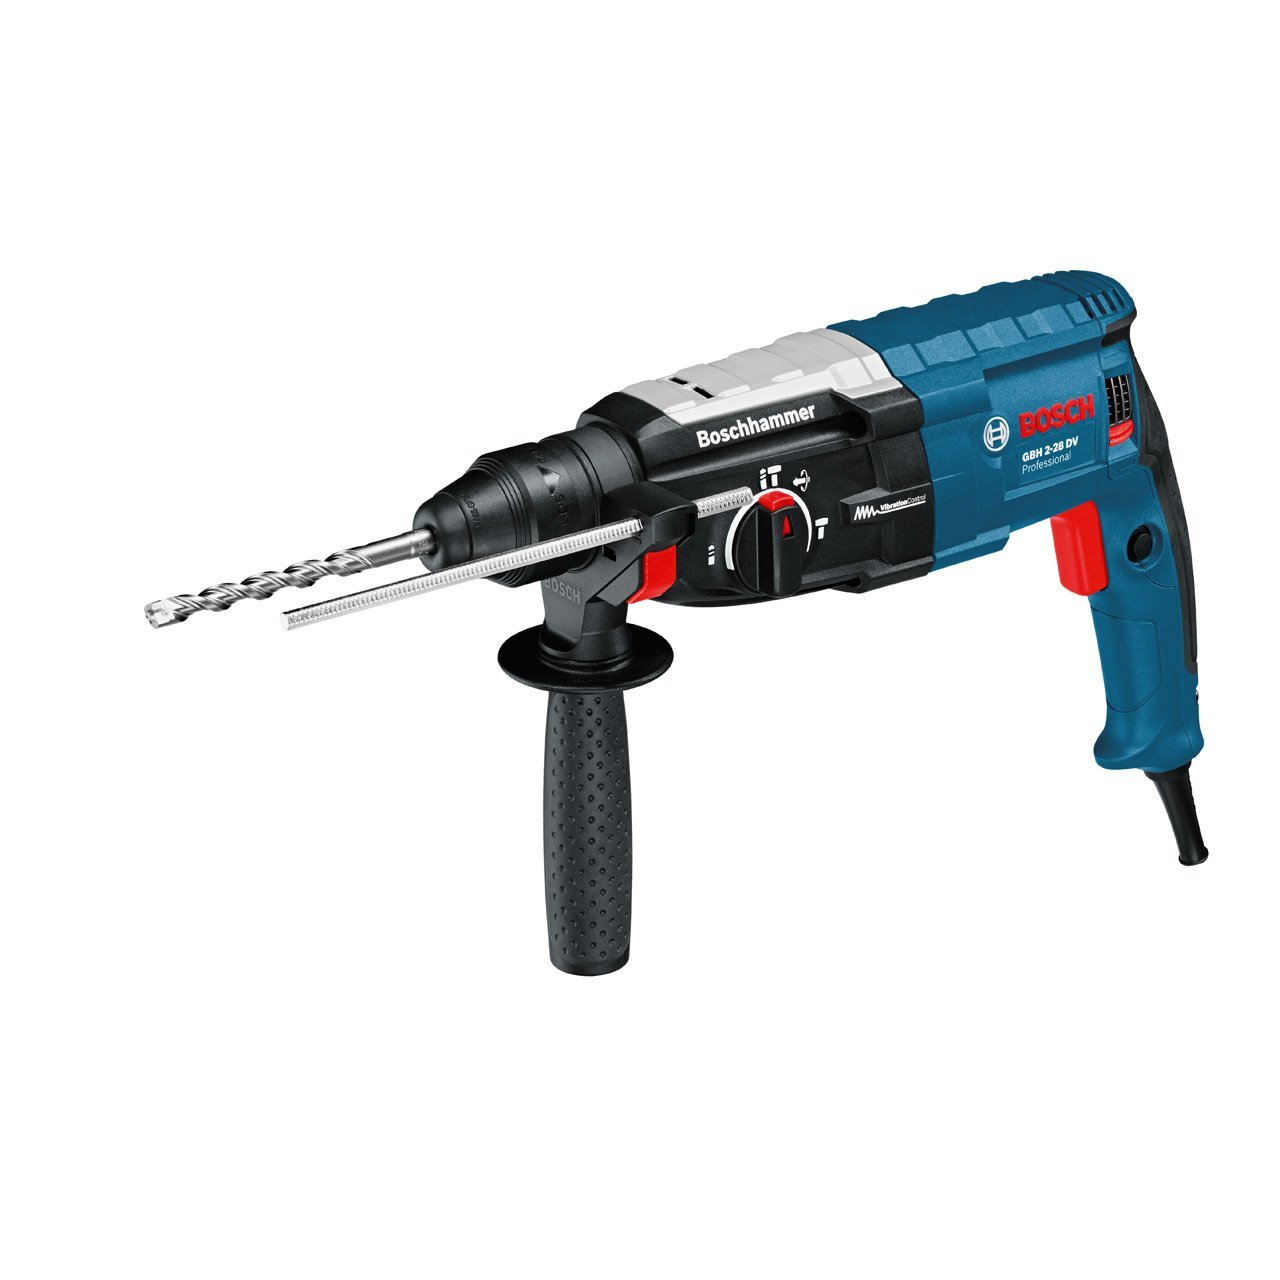 GBH-2-28-DV Avis test Makita Perceuse a percussion HP2071FJ